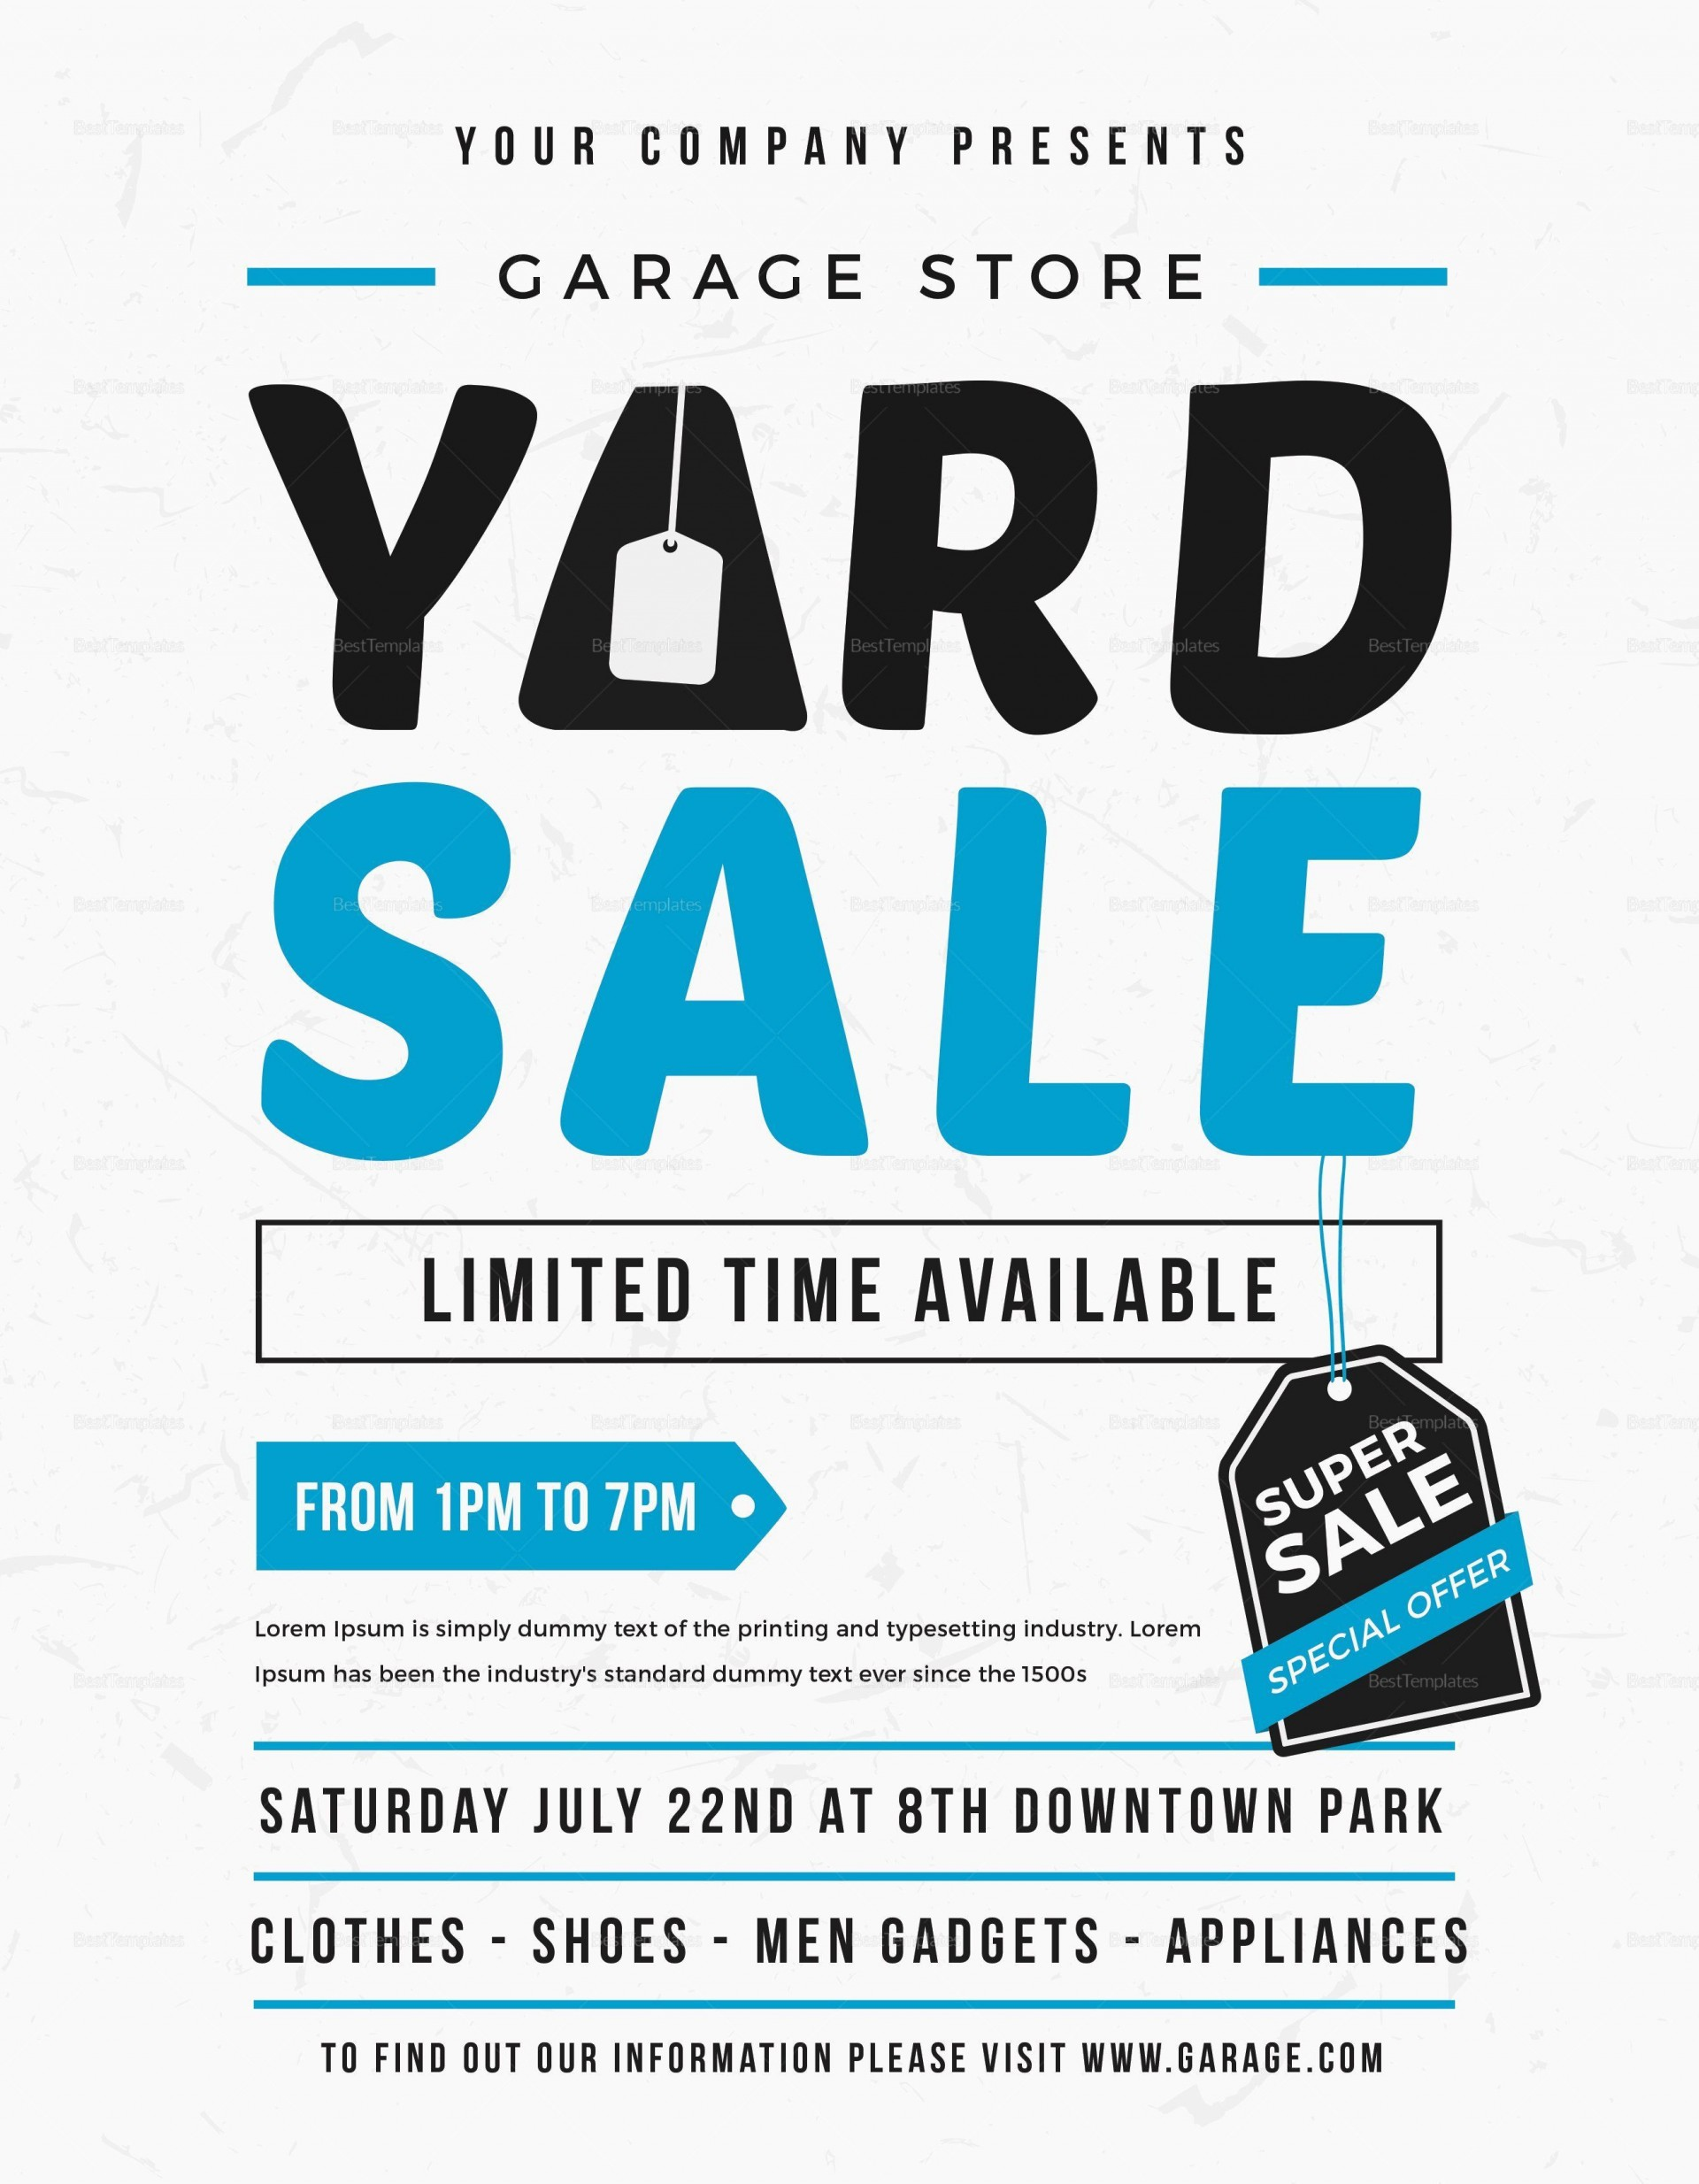 005 Impressive Yard Sale Flyer Template Design  Free Garage Microsoft Word1920